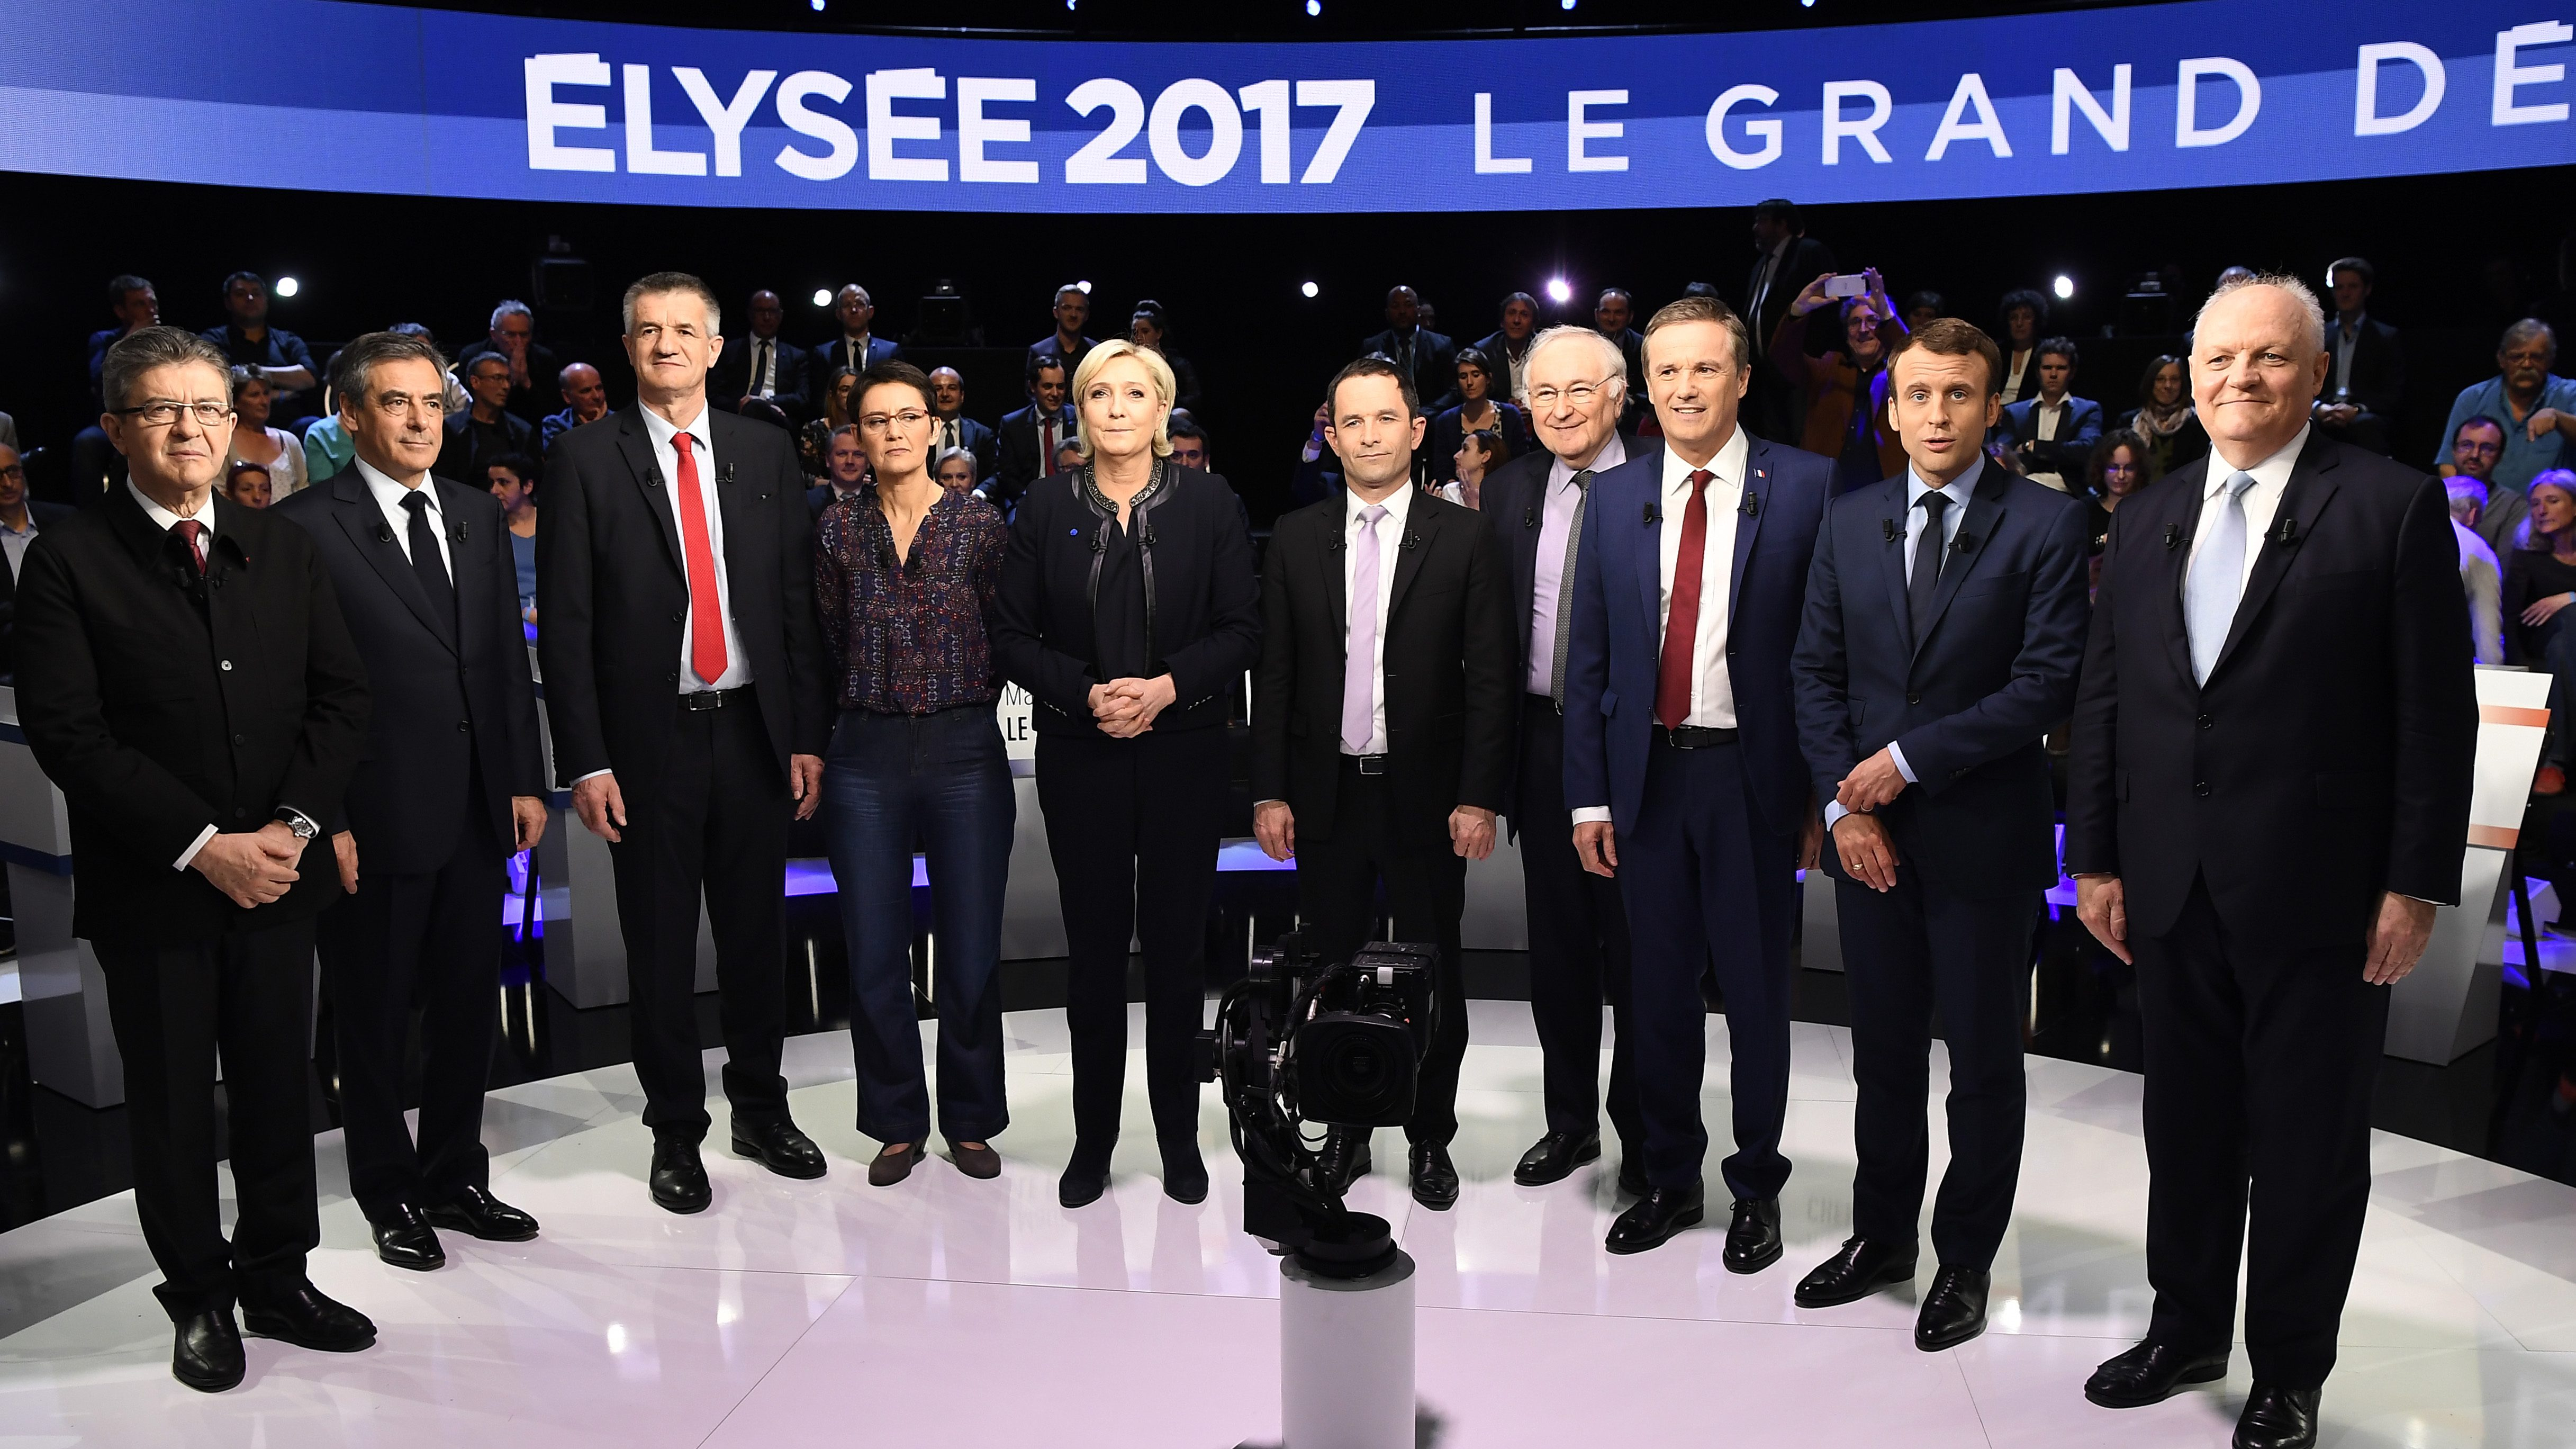 Candidates pose prior to a prime-time televised debate for the French 2017 presidential election in La Plaine Saint-Denis, near Paris